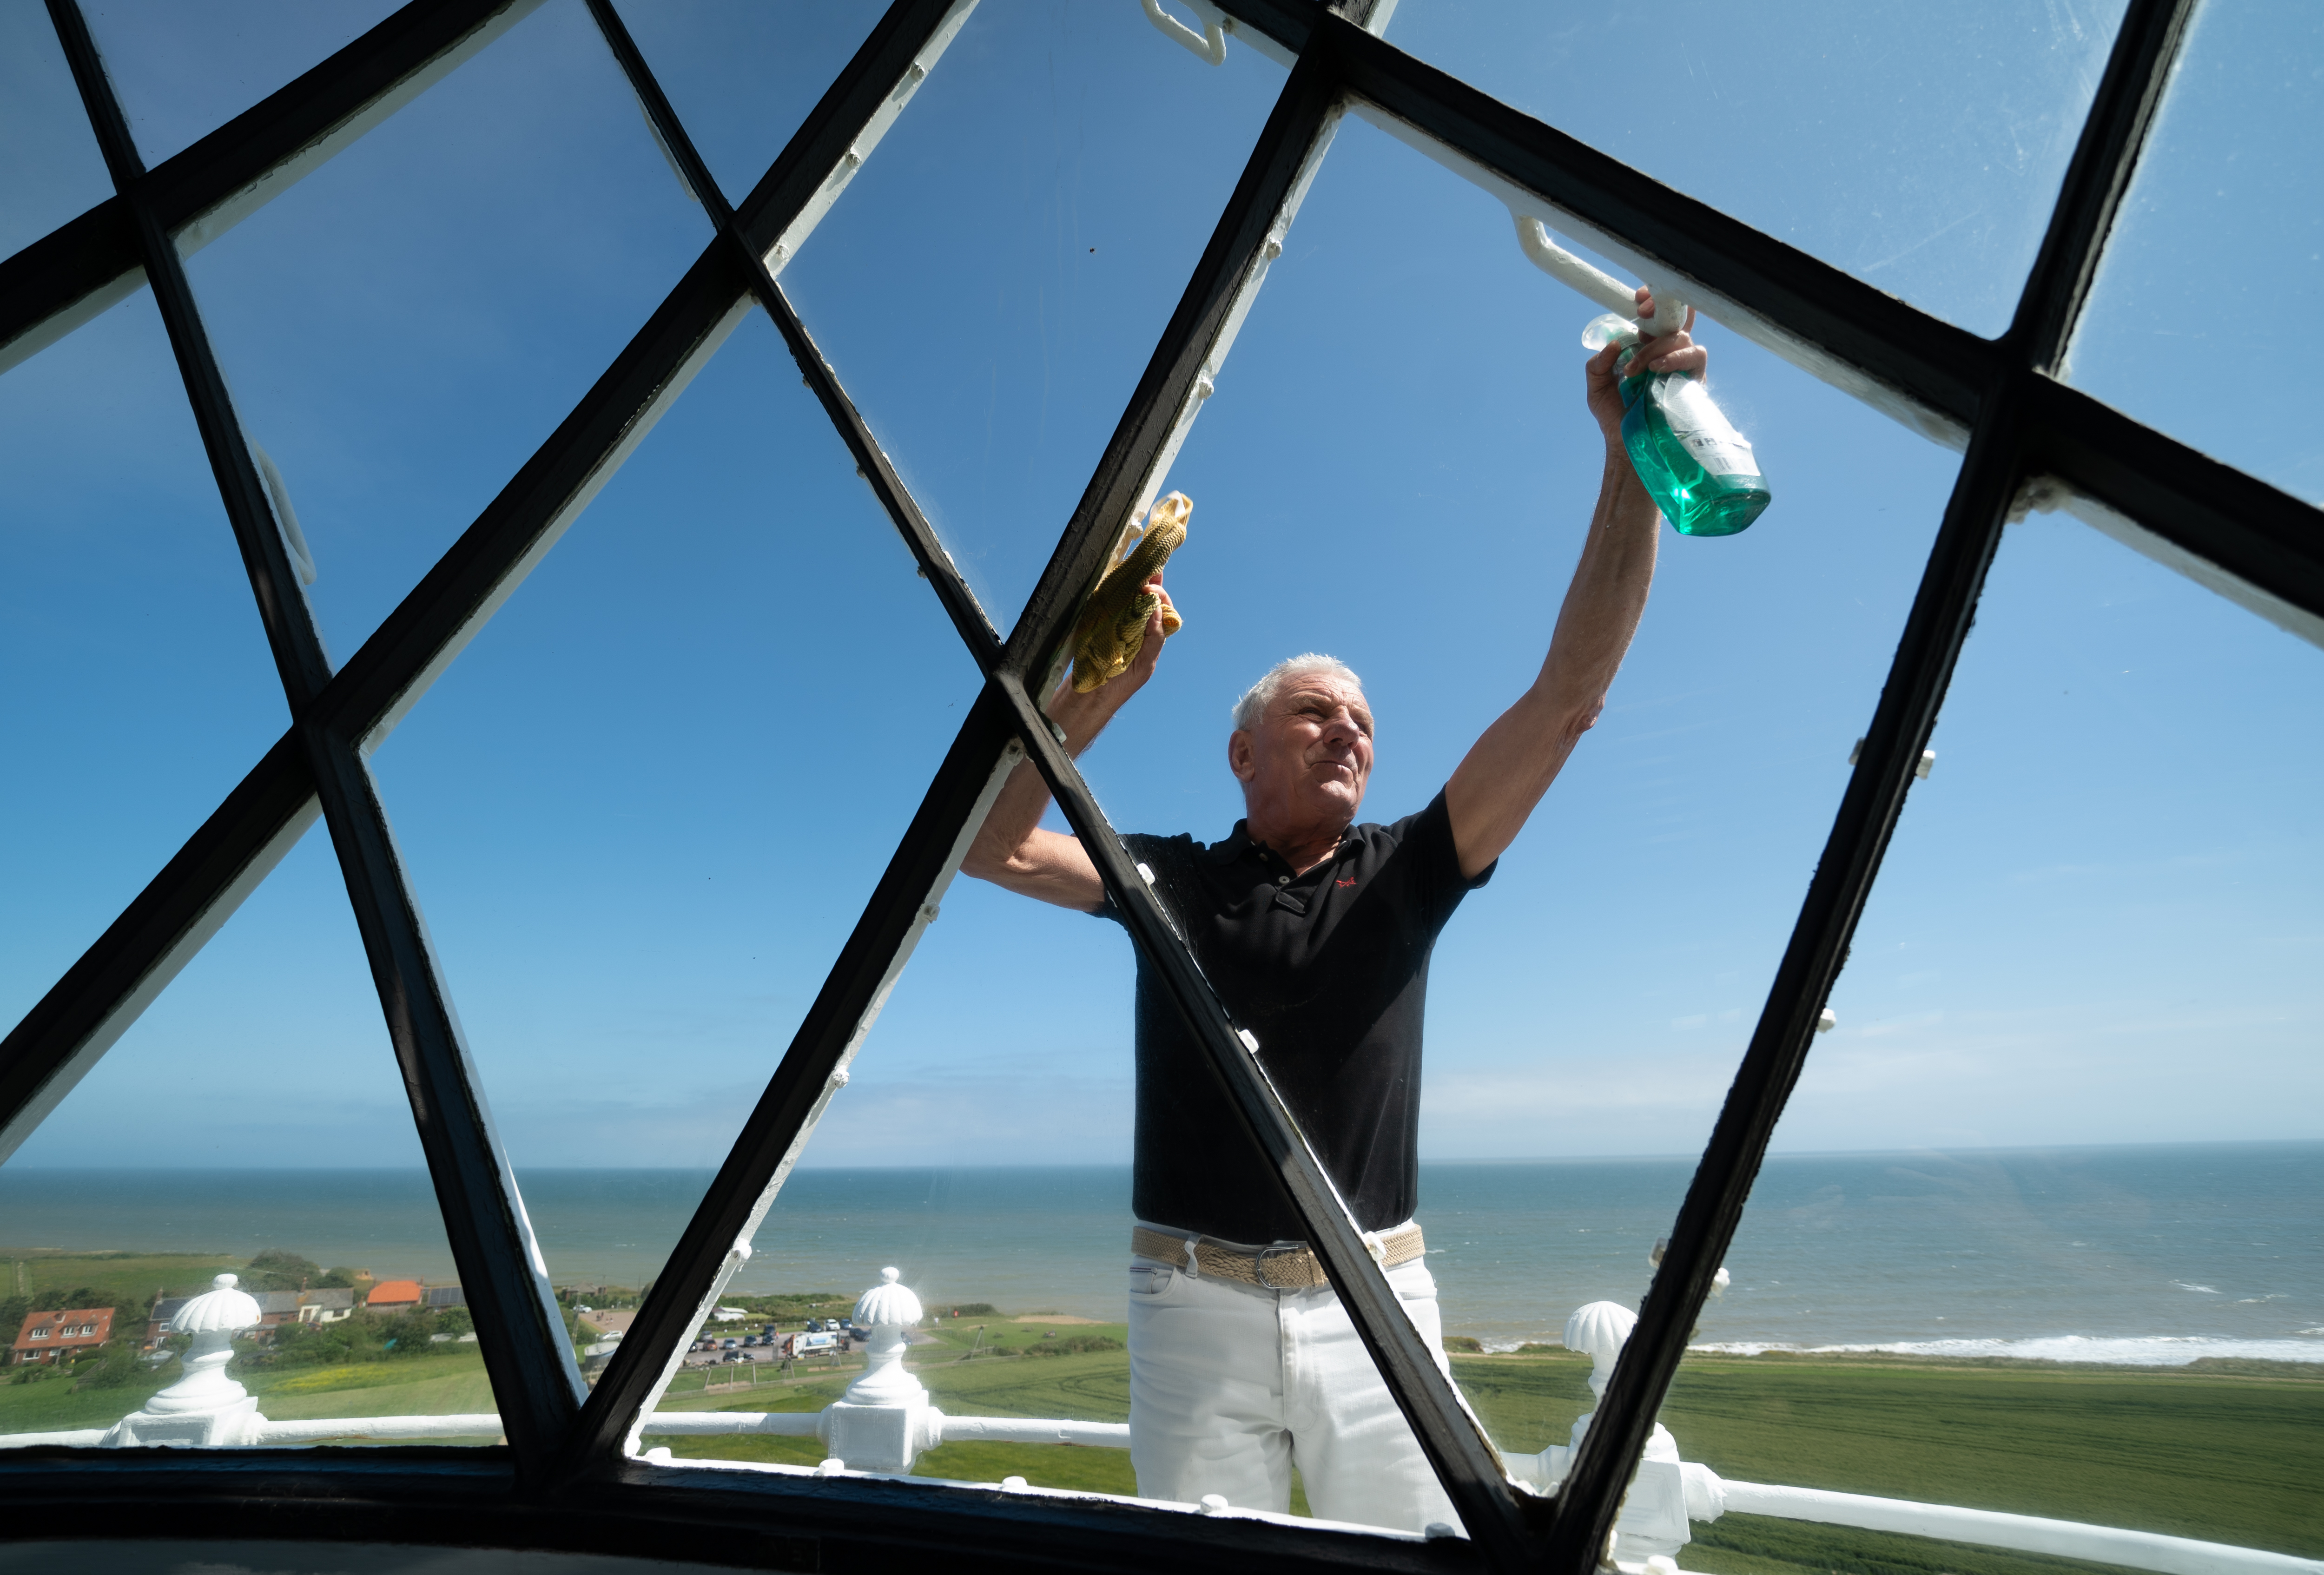 <p>Chairman of Friends of Happisburgh Lighthouse David Vyse cleans the windows on the lantern room of Happisburgh Lighthouse in Norfolk as it prepares to reopen to visitors after being closed since 2019 due to the Coronavirus pandemic. Picture date: Thursday July 15, 2021.</p>